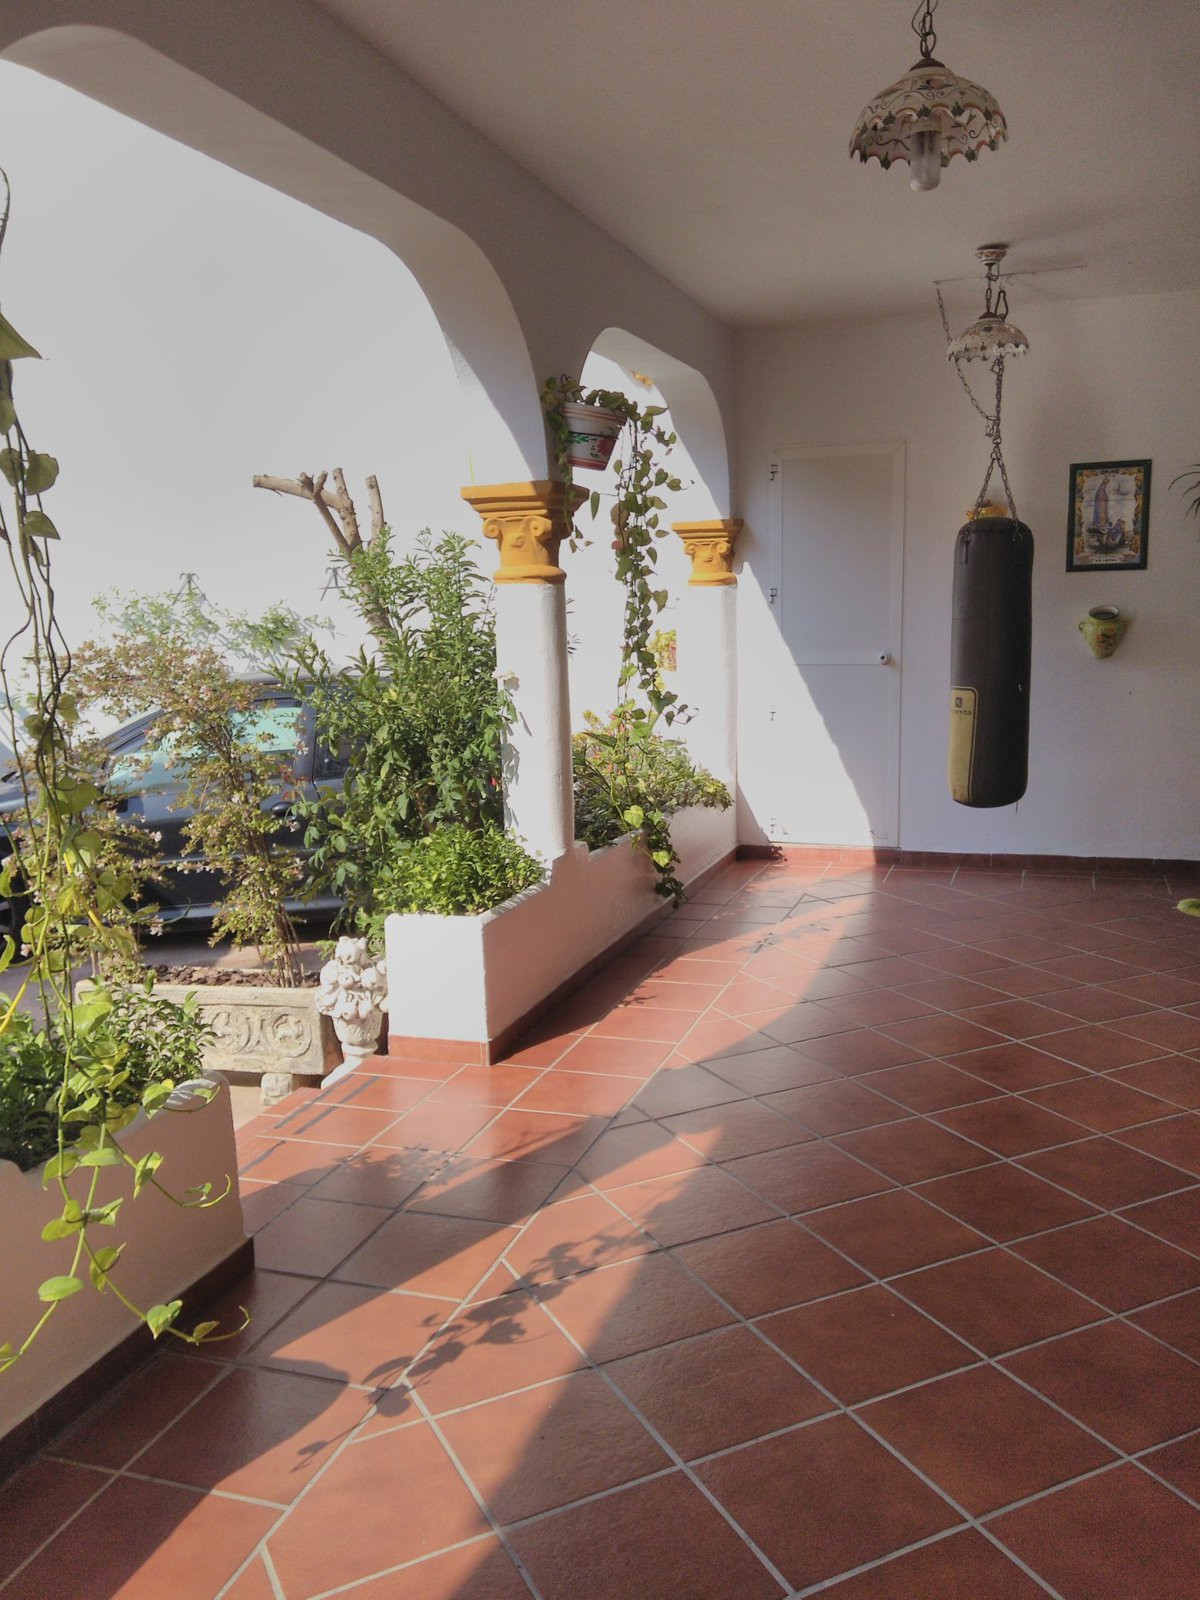 SUPER HOUSE CLOSE TO ALL SERVICES, WITH MANY POSSIBILITIES AS YOU HAVE ACCESS BY TWO STREETS, HAS A ,Spain